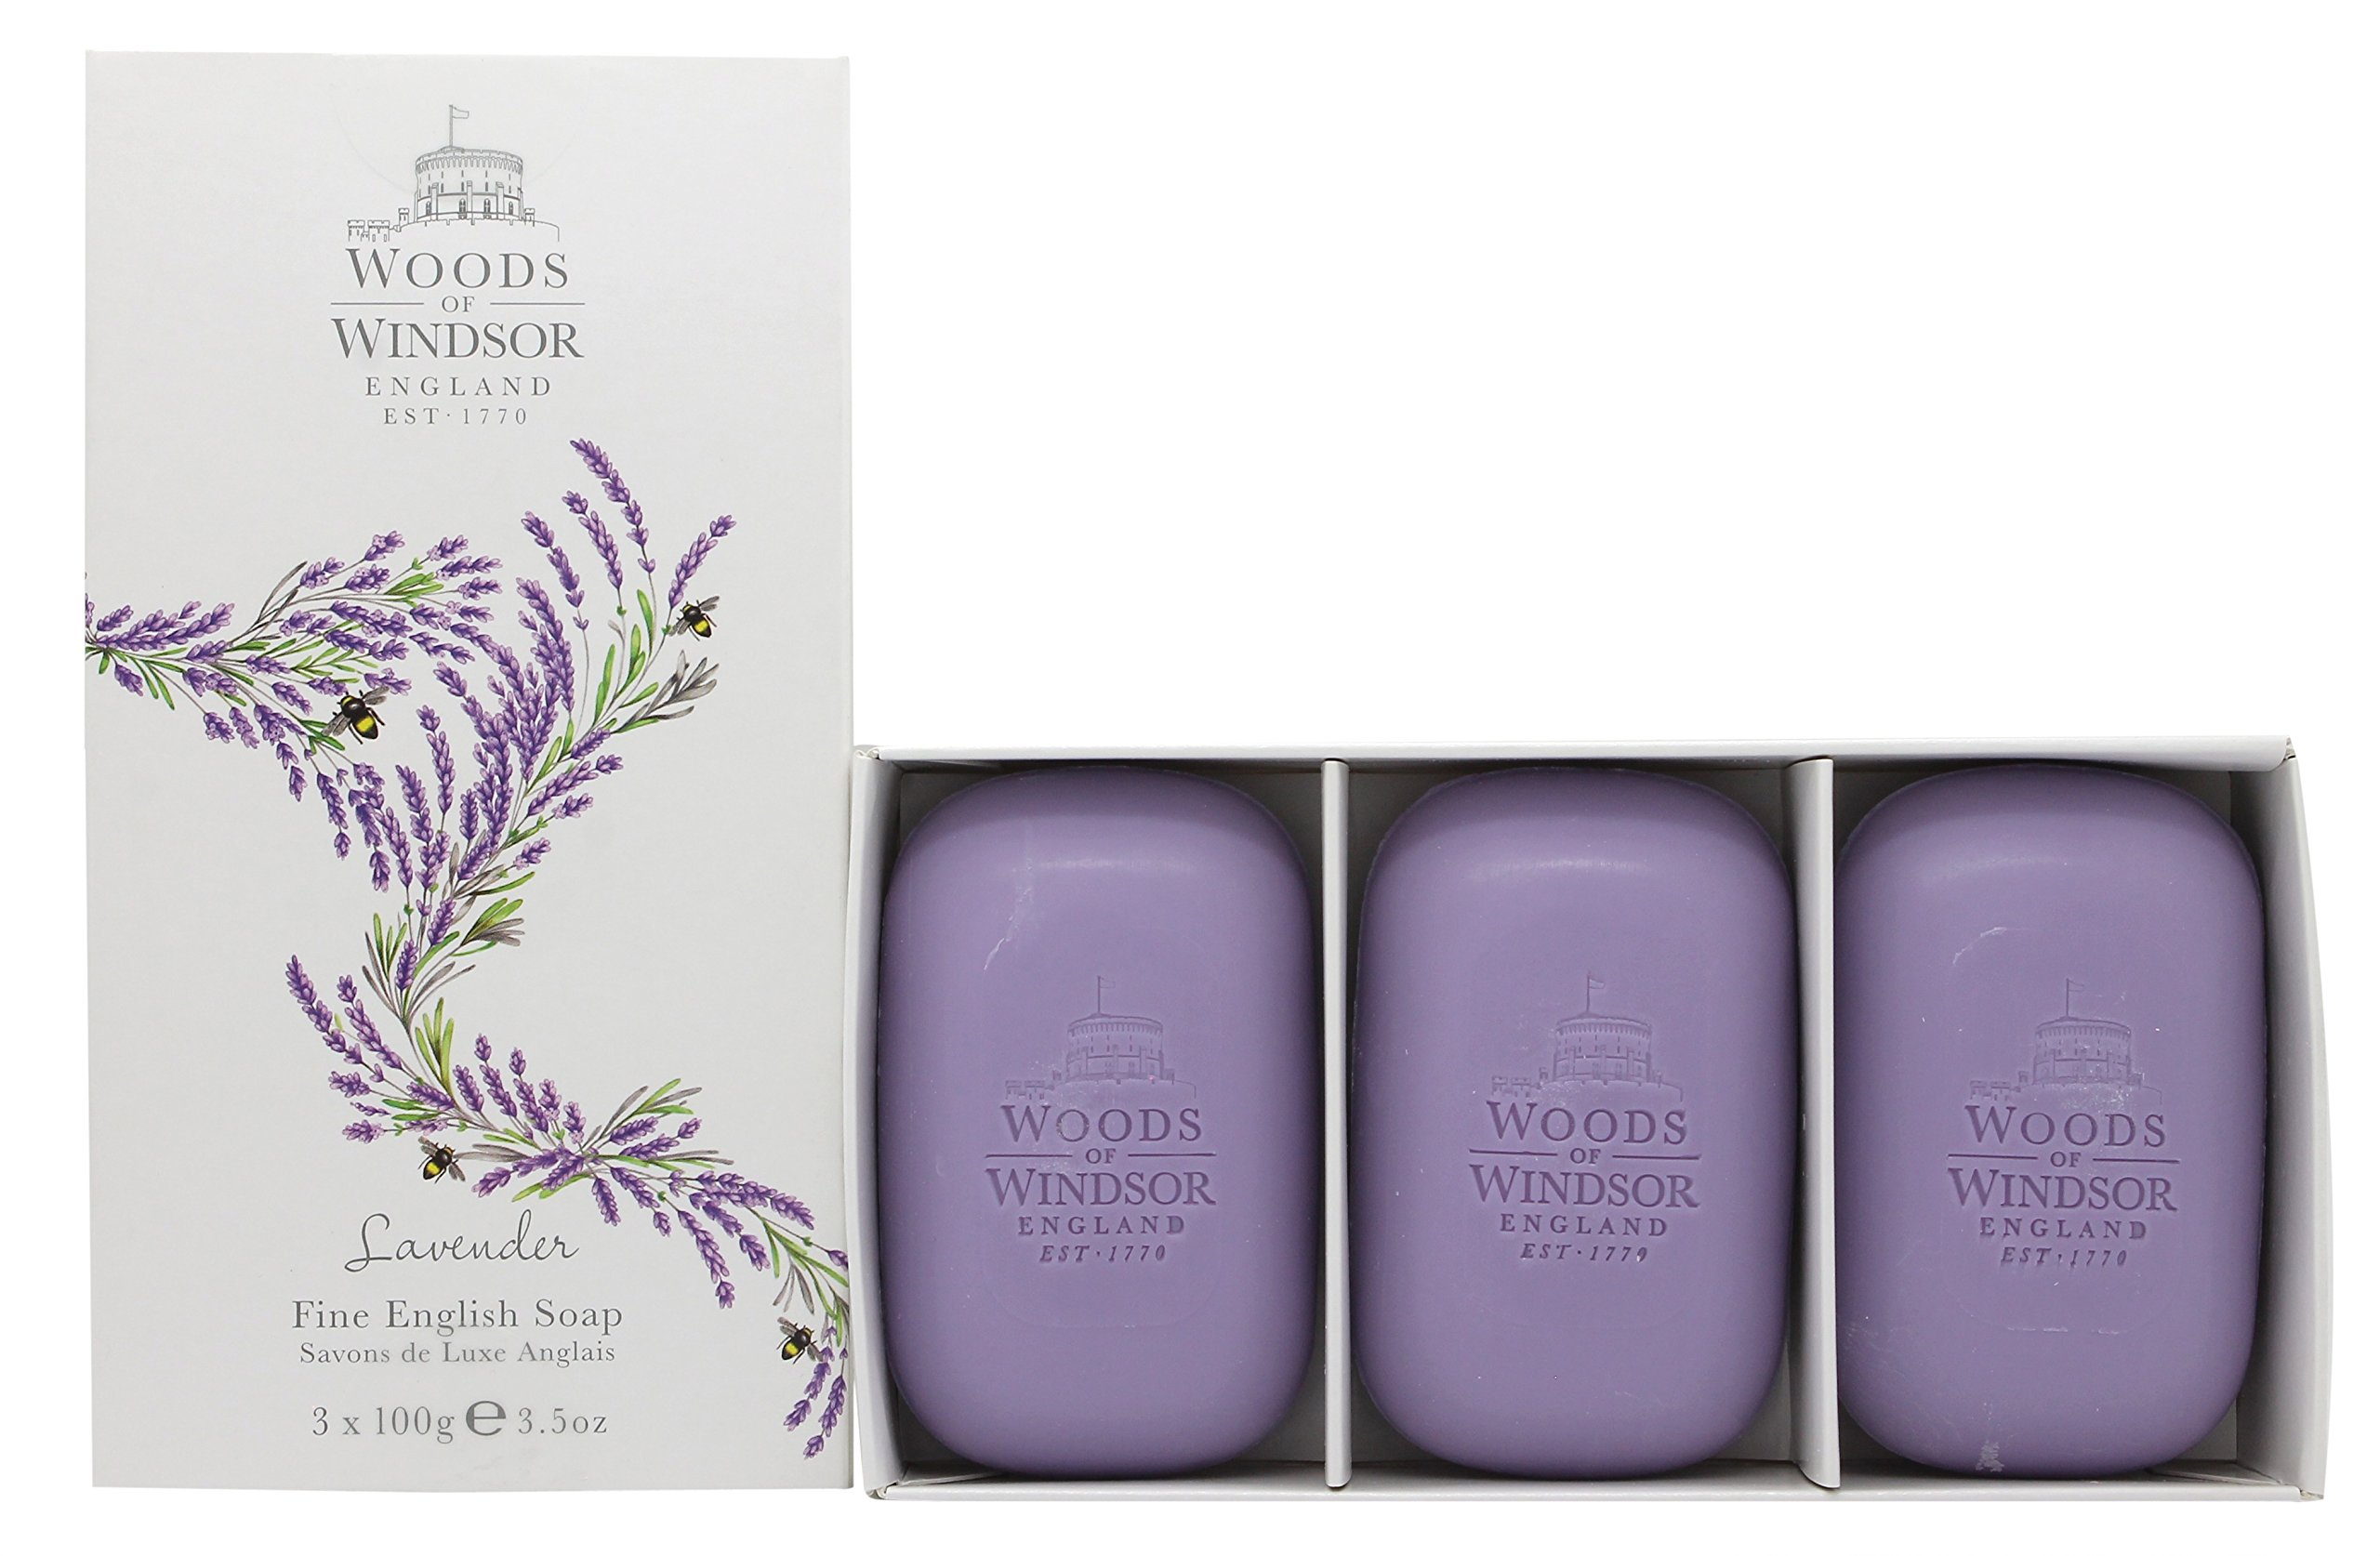 Woods of Windsor Lavender Fine English Soap (Box of 3) 3.5ozea Bars